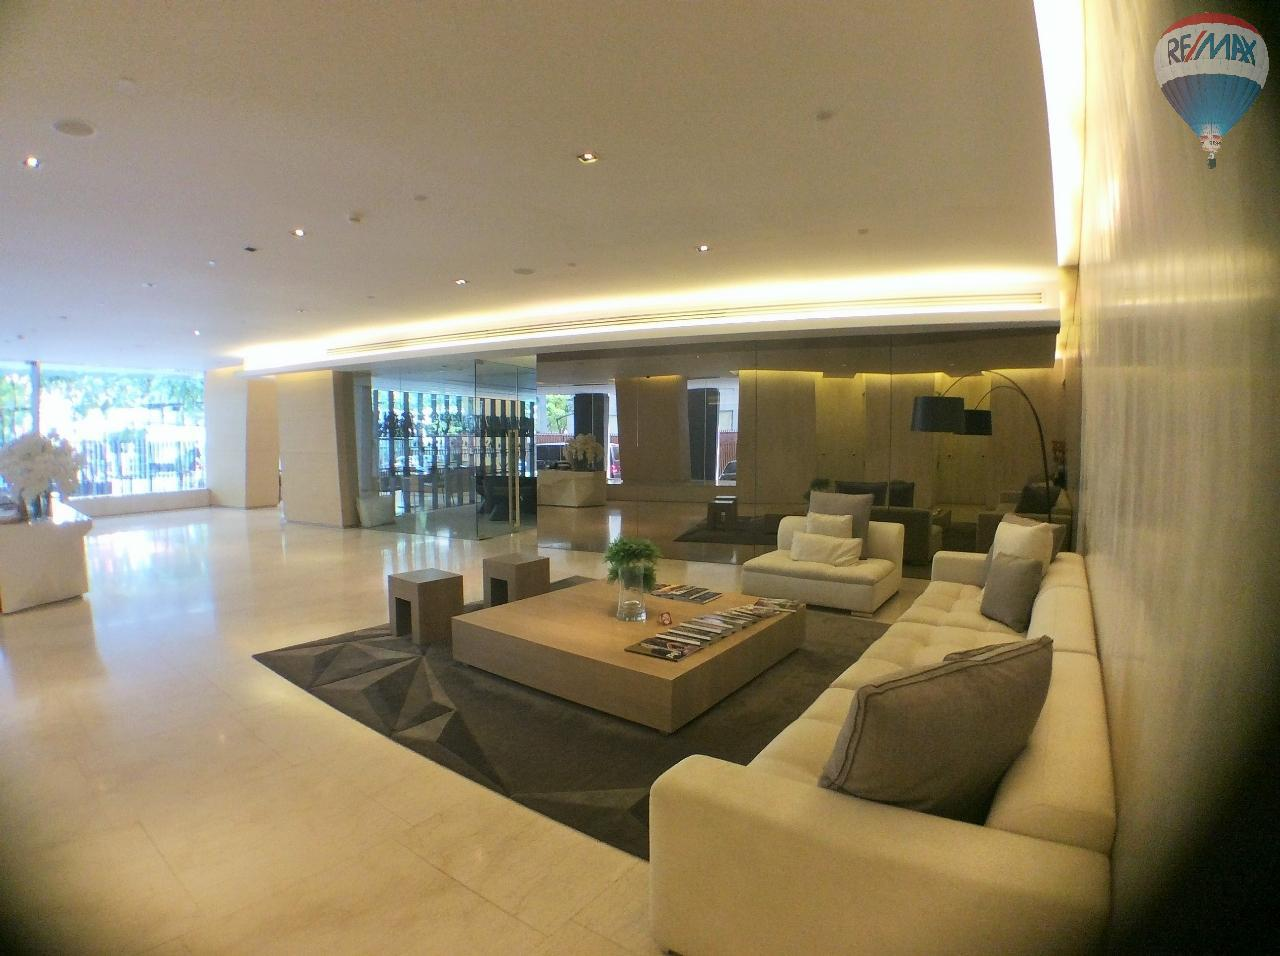 RE/MAX BestLife Agency's Saladaeng Residences 1 bedroom, Saladaeng BTS, Silom MRT, condo for rent 2